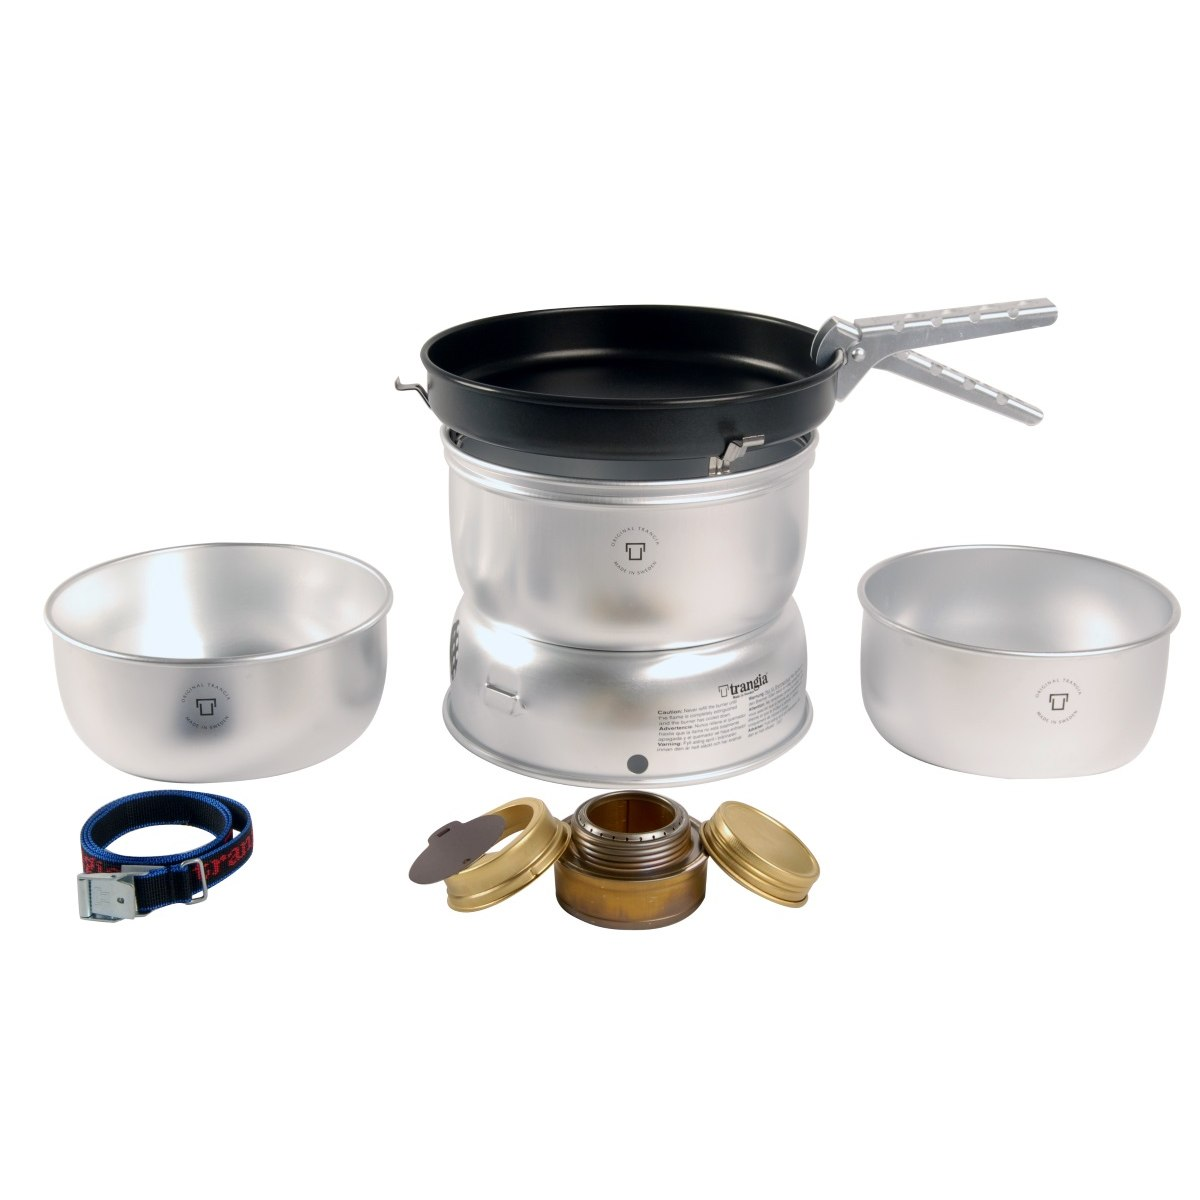 Image of Trangia Storm Cooker 25-3 UL - Stove System with Non-Stick Frypan